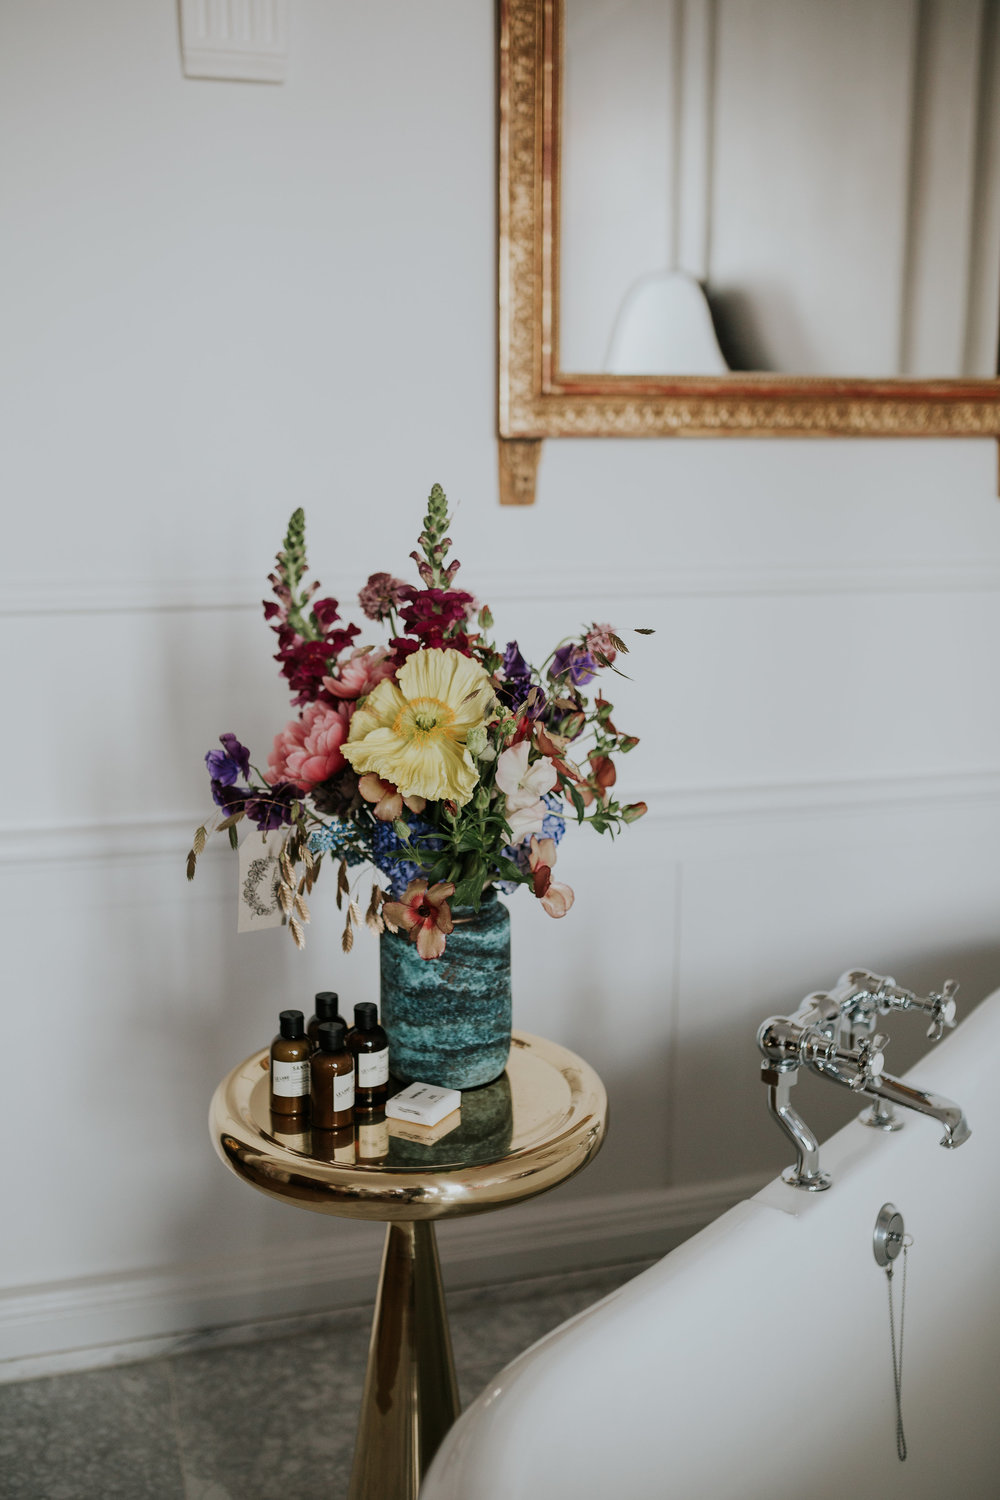 A.P Bloem florist bloemist evenement bloemen amsterdam luxury golden age guirlande garland florals pulitzer wedding bruiloft trouwen marriage styling liefde interior vase arrangement